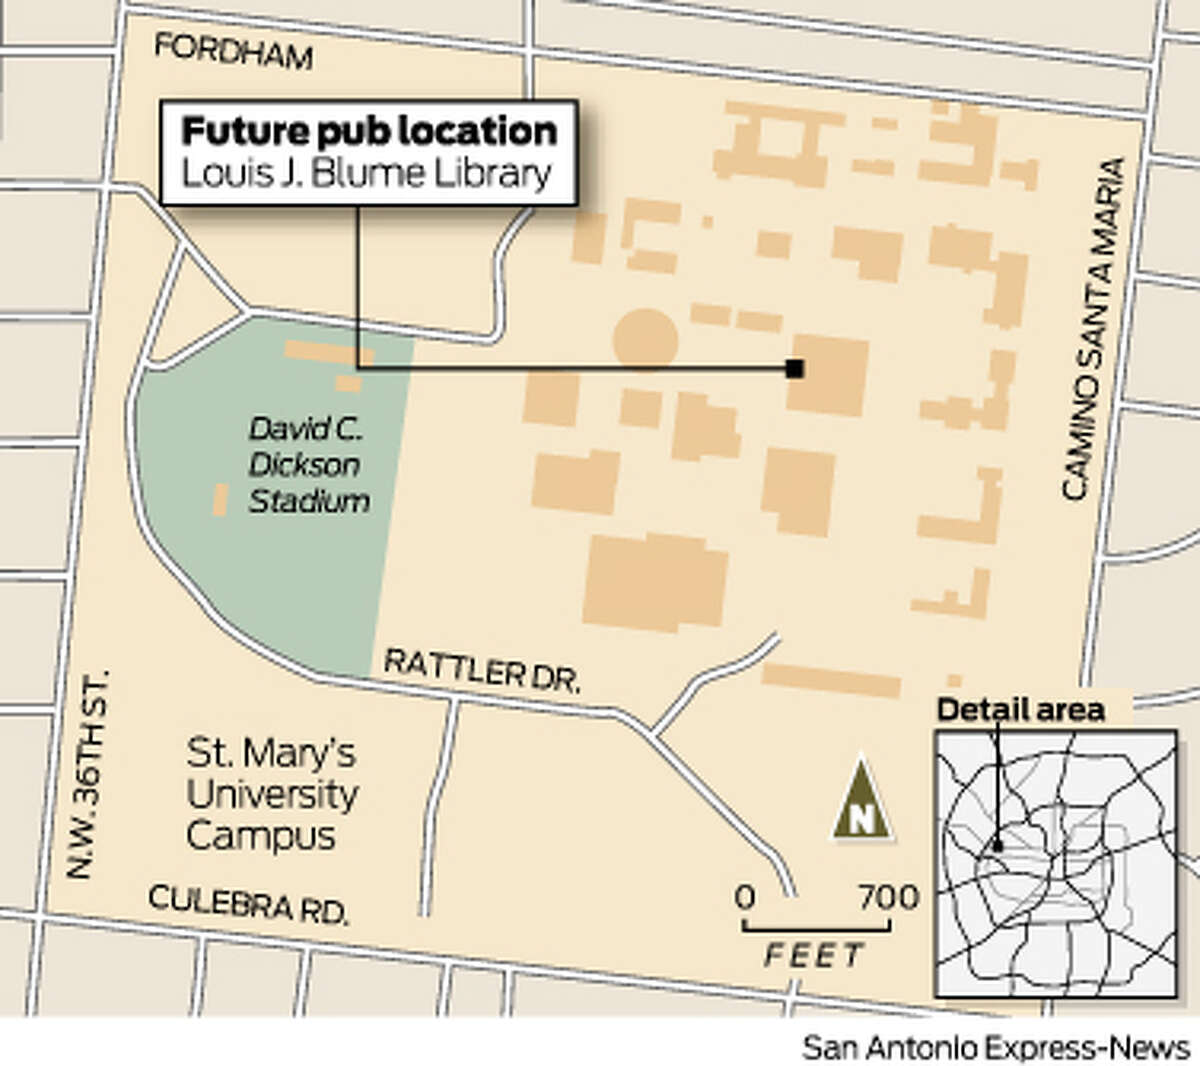 St. Mary's University in San Antonio will build a pub on campus, as shown in this map. Click through the gallery to see the schools that do or don't sell alcohol.